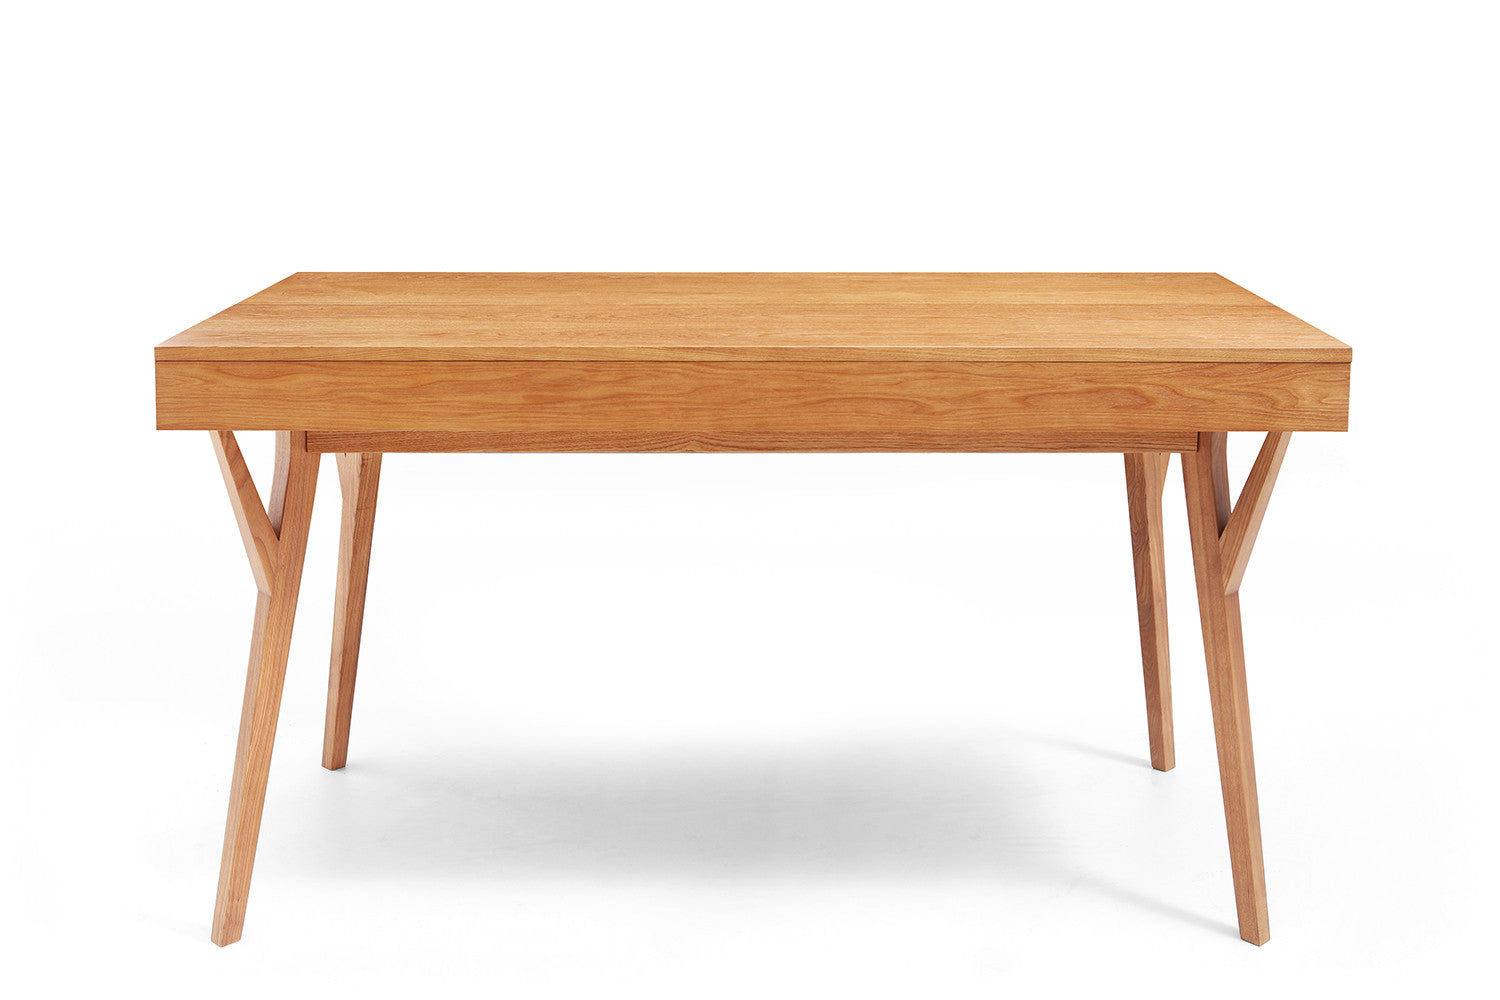 Bureau design scandinave en bois et convertible emme for Table vue de haut